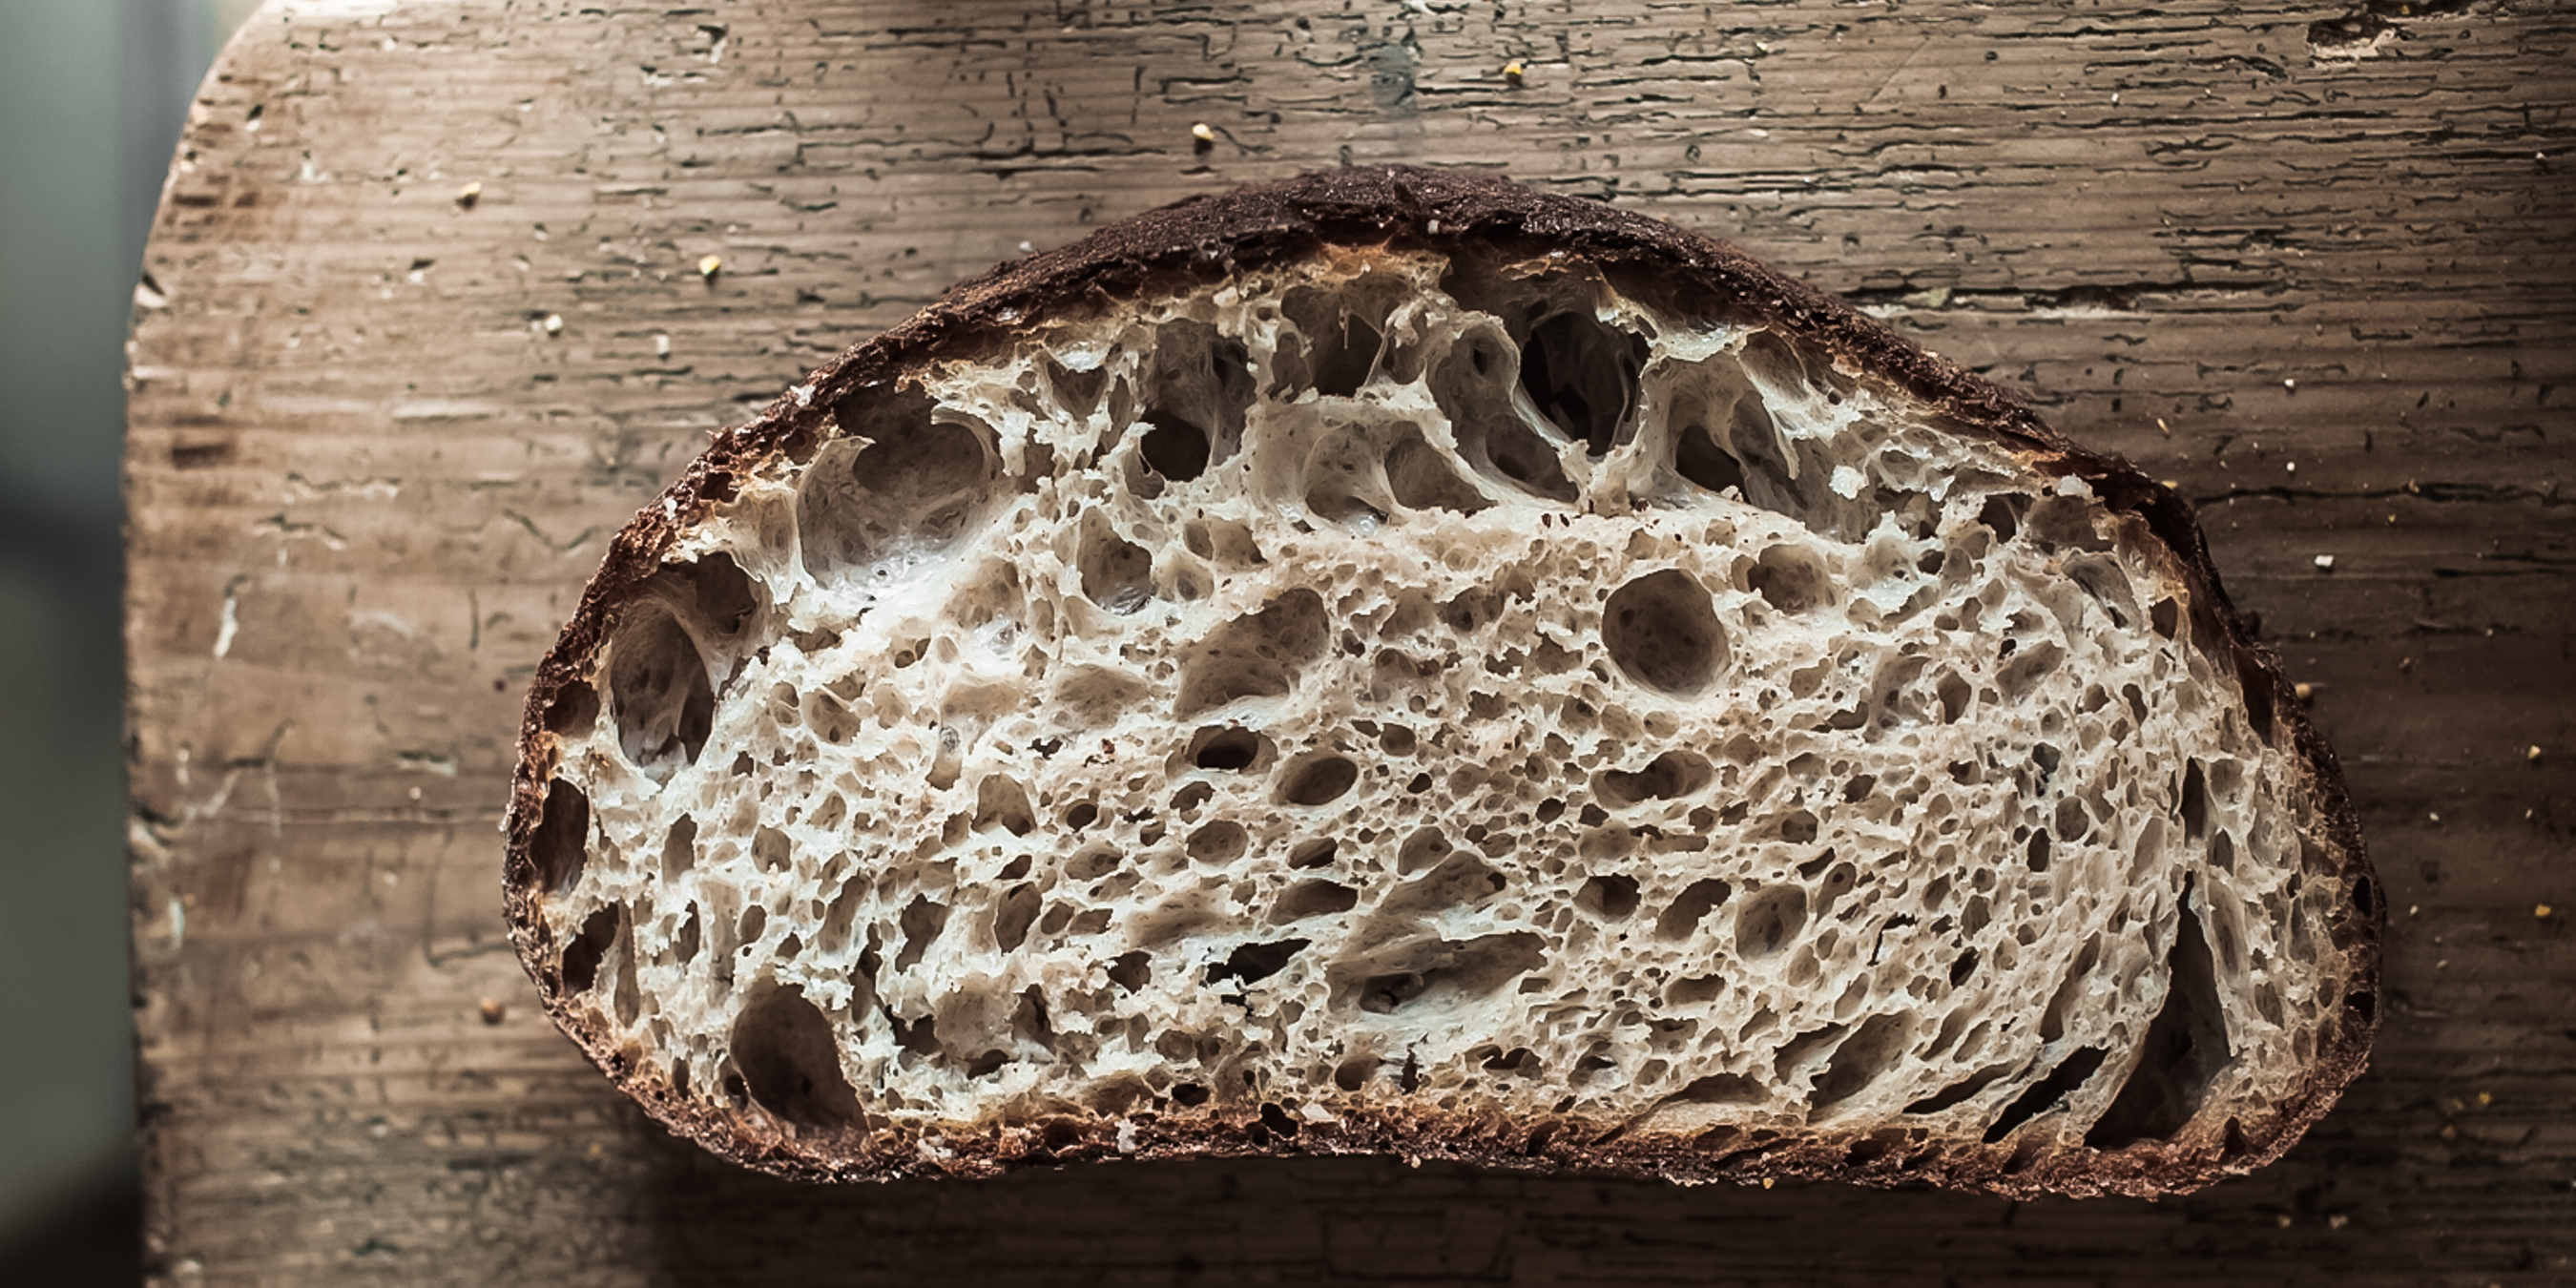 a slice of sourdough showing the nutrition via the crumb stucture